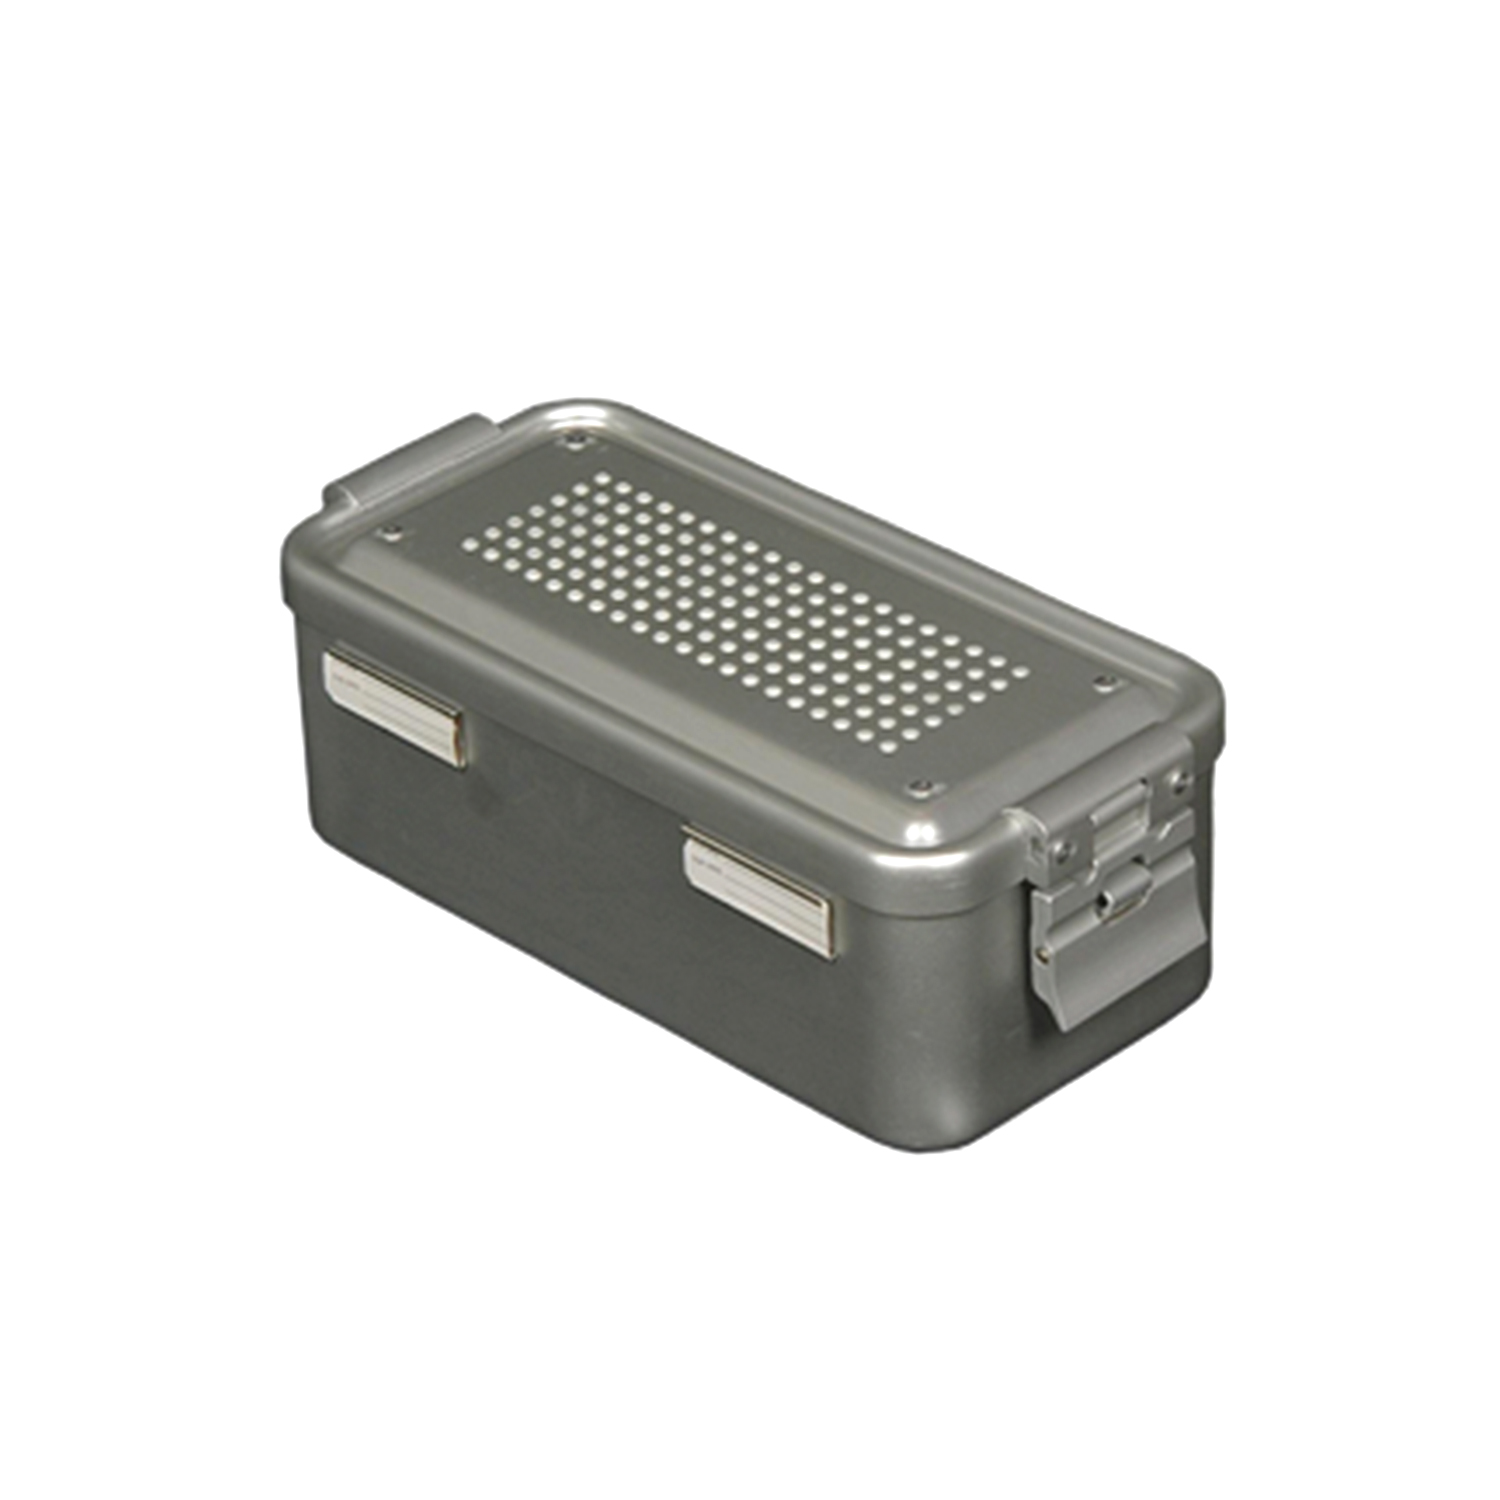 """Sterilization Containers Non Perforated Lid - Dental Container 12"""" x 7.5"""""""